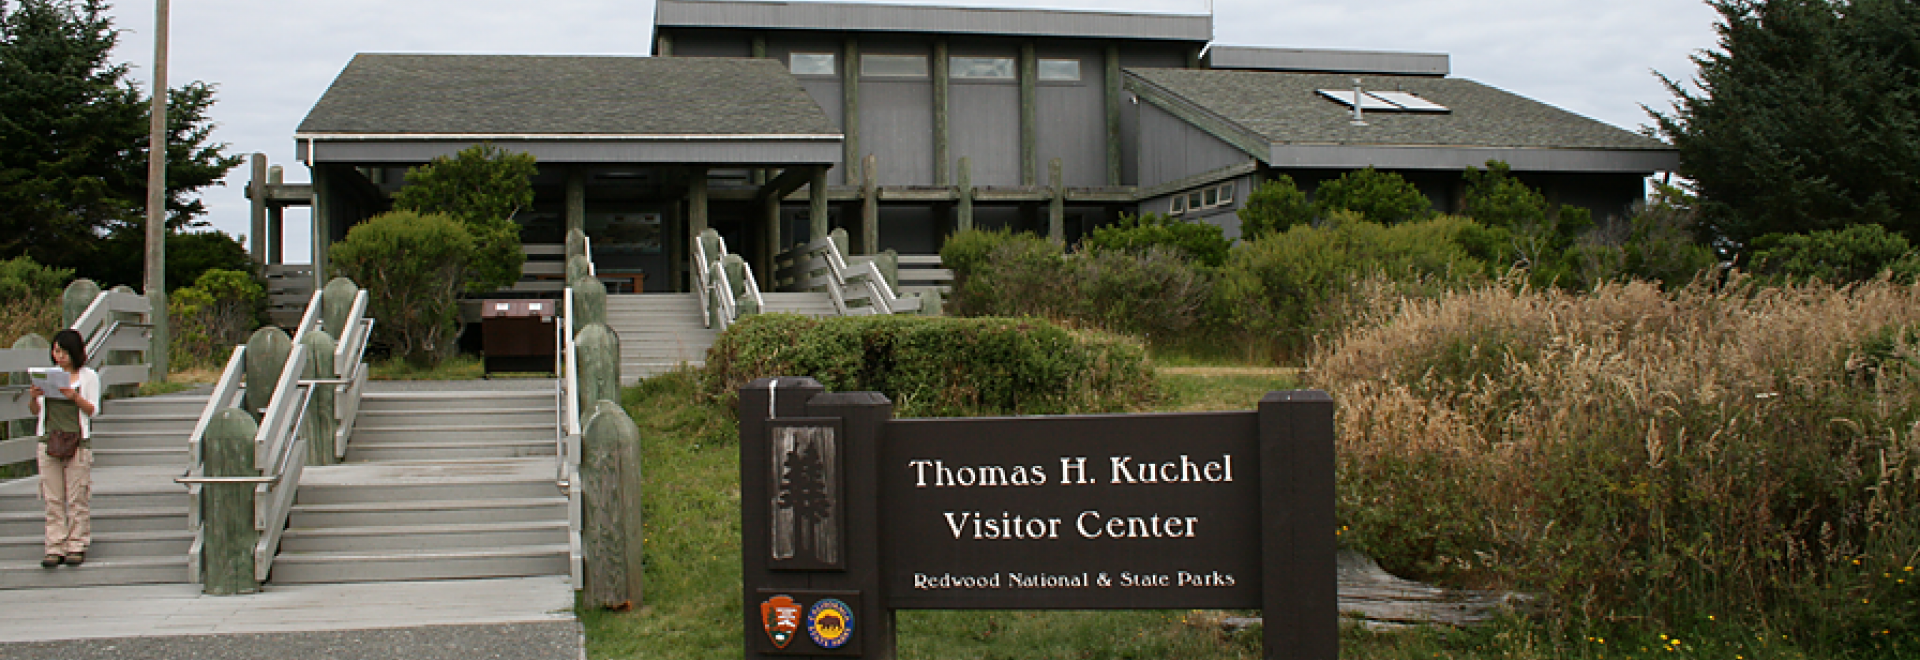 Thomas H. Kuchel Visitor Center for the south side of Redwood National and State Parks